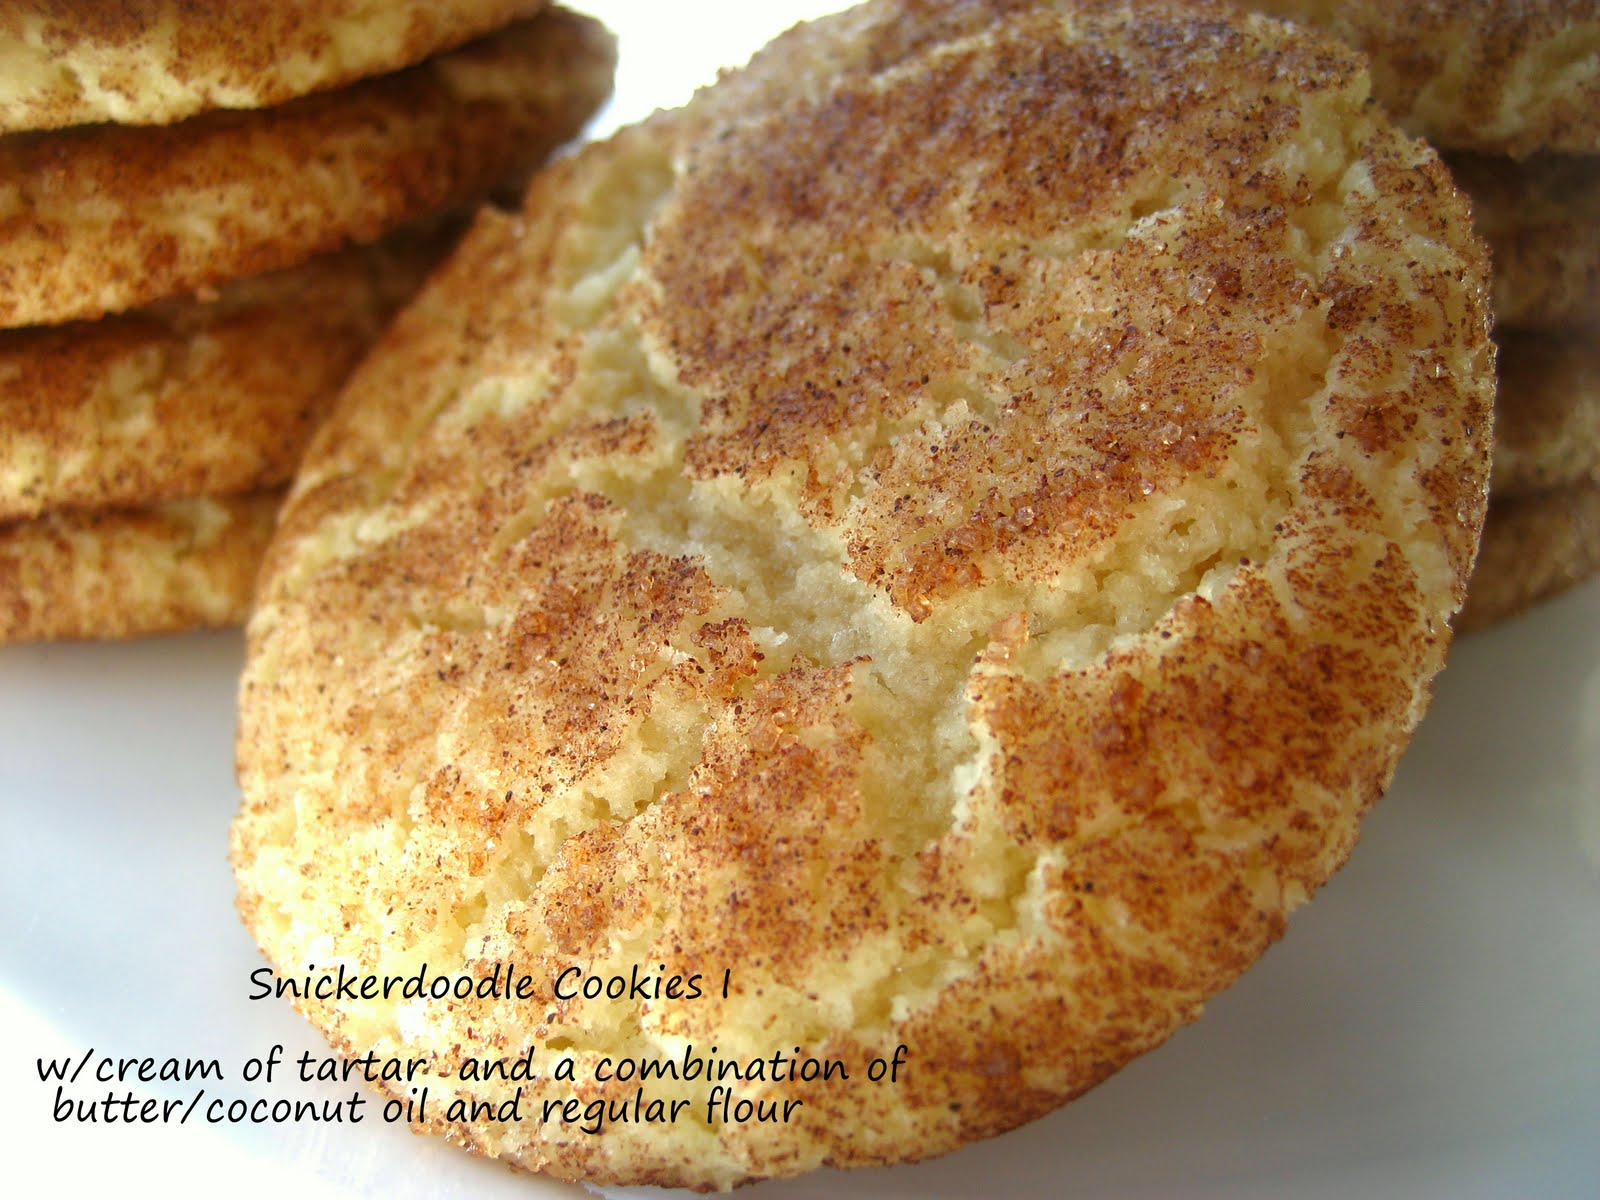 Home Cooking In Montana: My adventure with Snickerdoodle cookies...